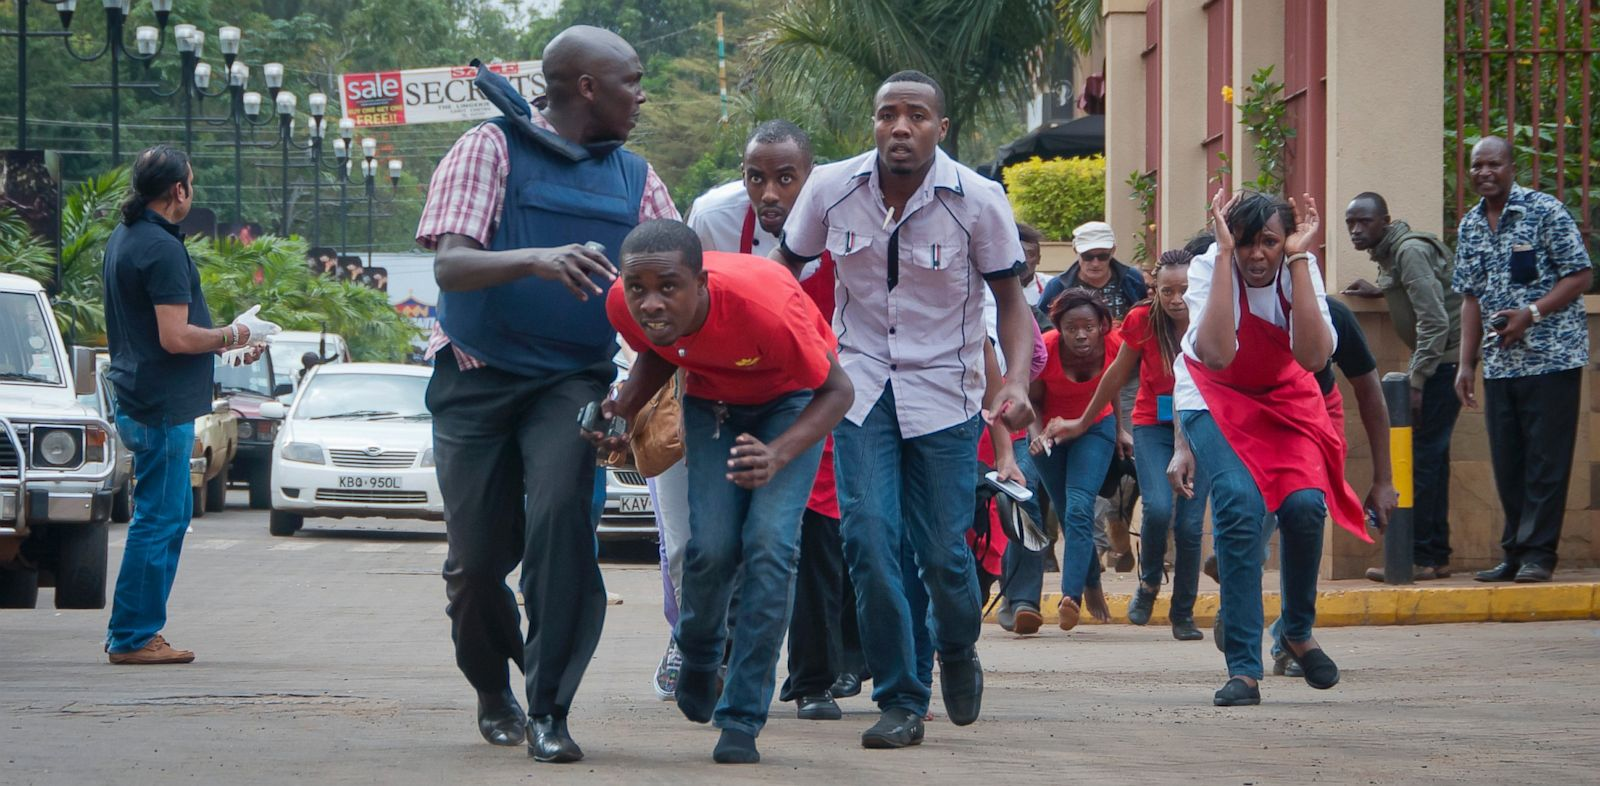 PHOTO: Civilians flee from the Westgate Mall in Kenya